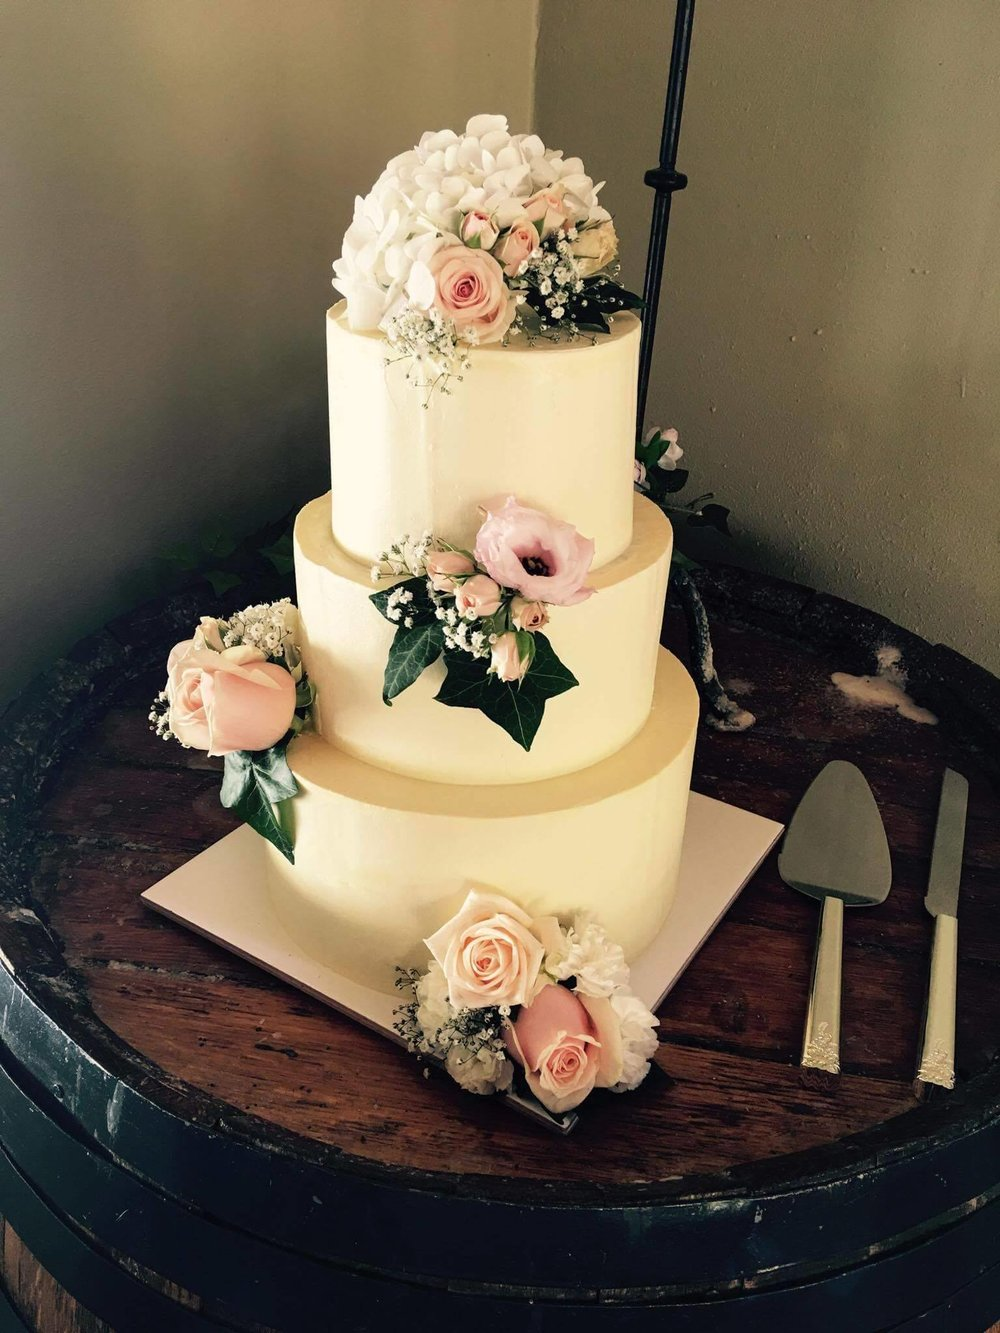 Rebecca Jane Sugar Art - Floral buttercream wedding cake